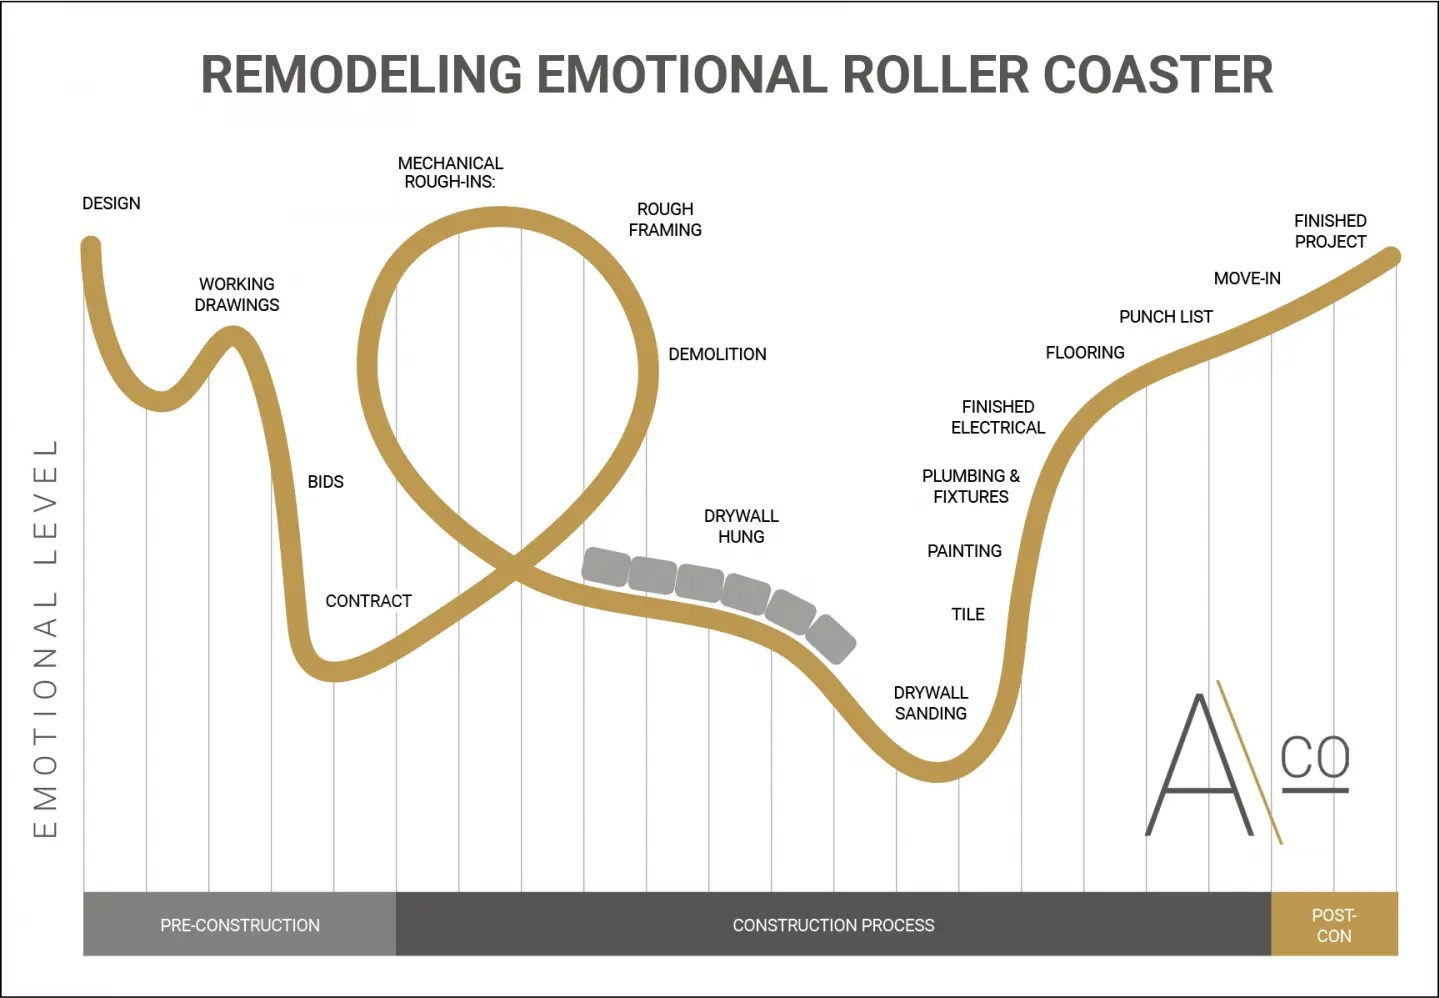 The Remodeling Emotional Rollercoaster